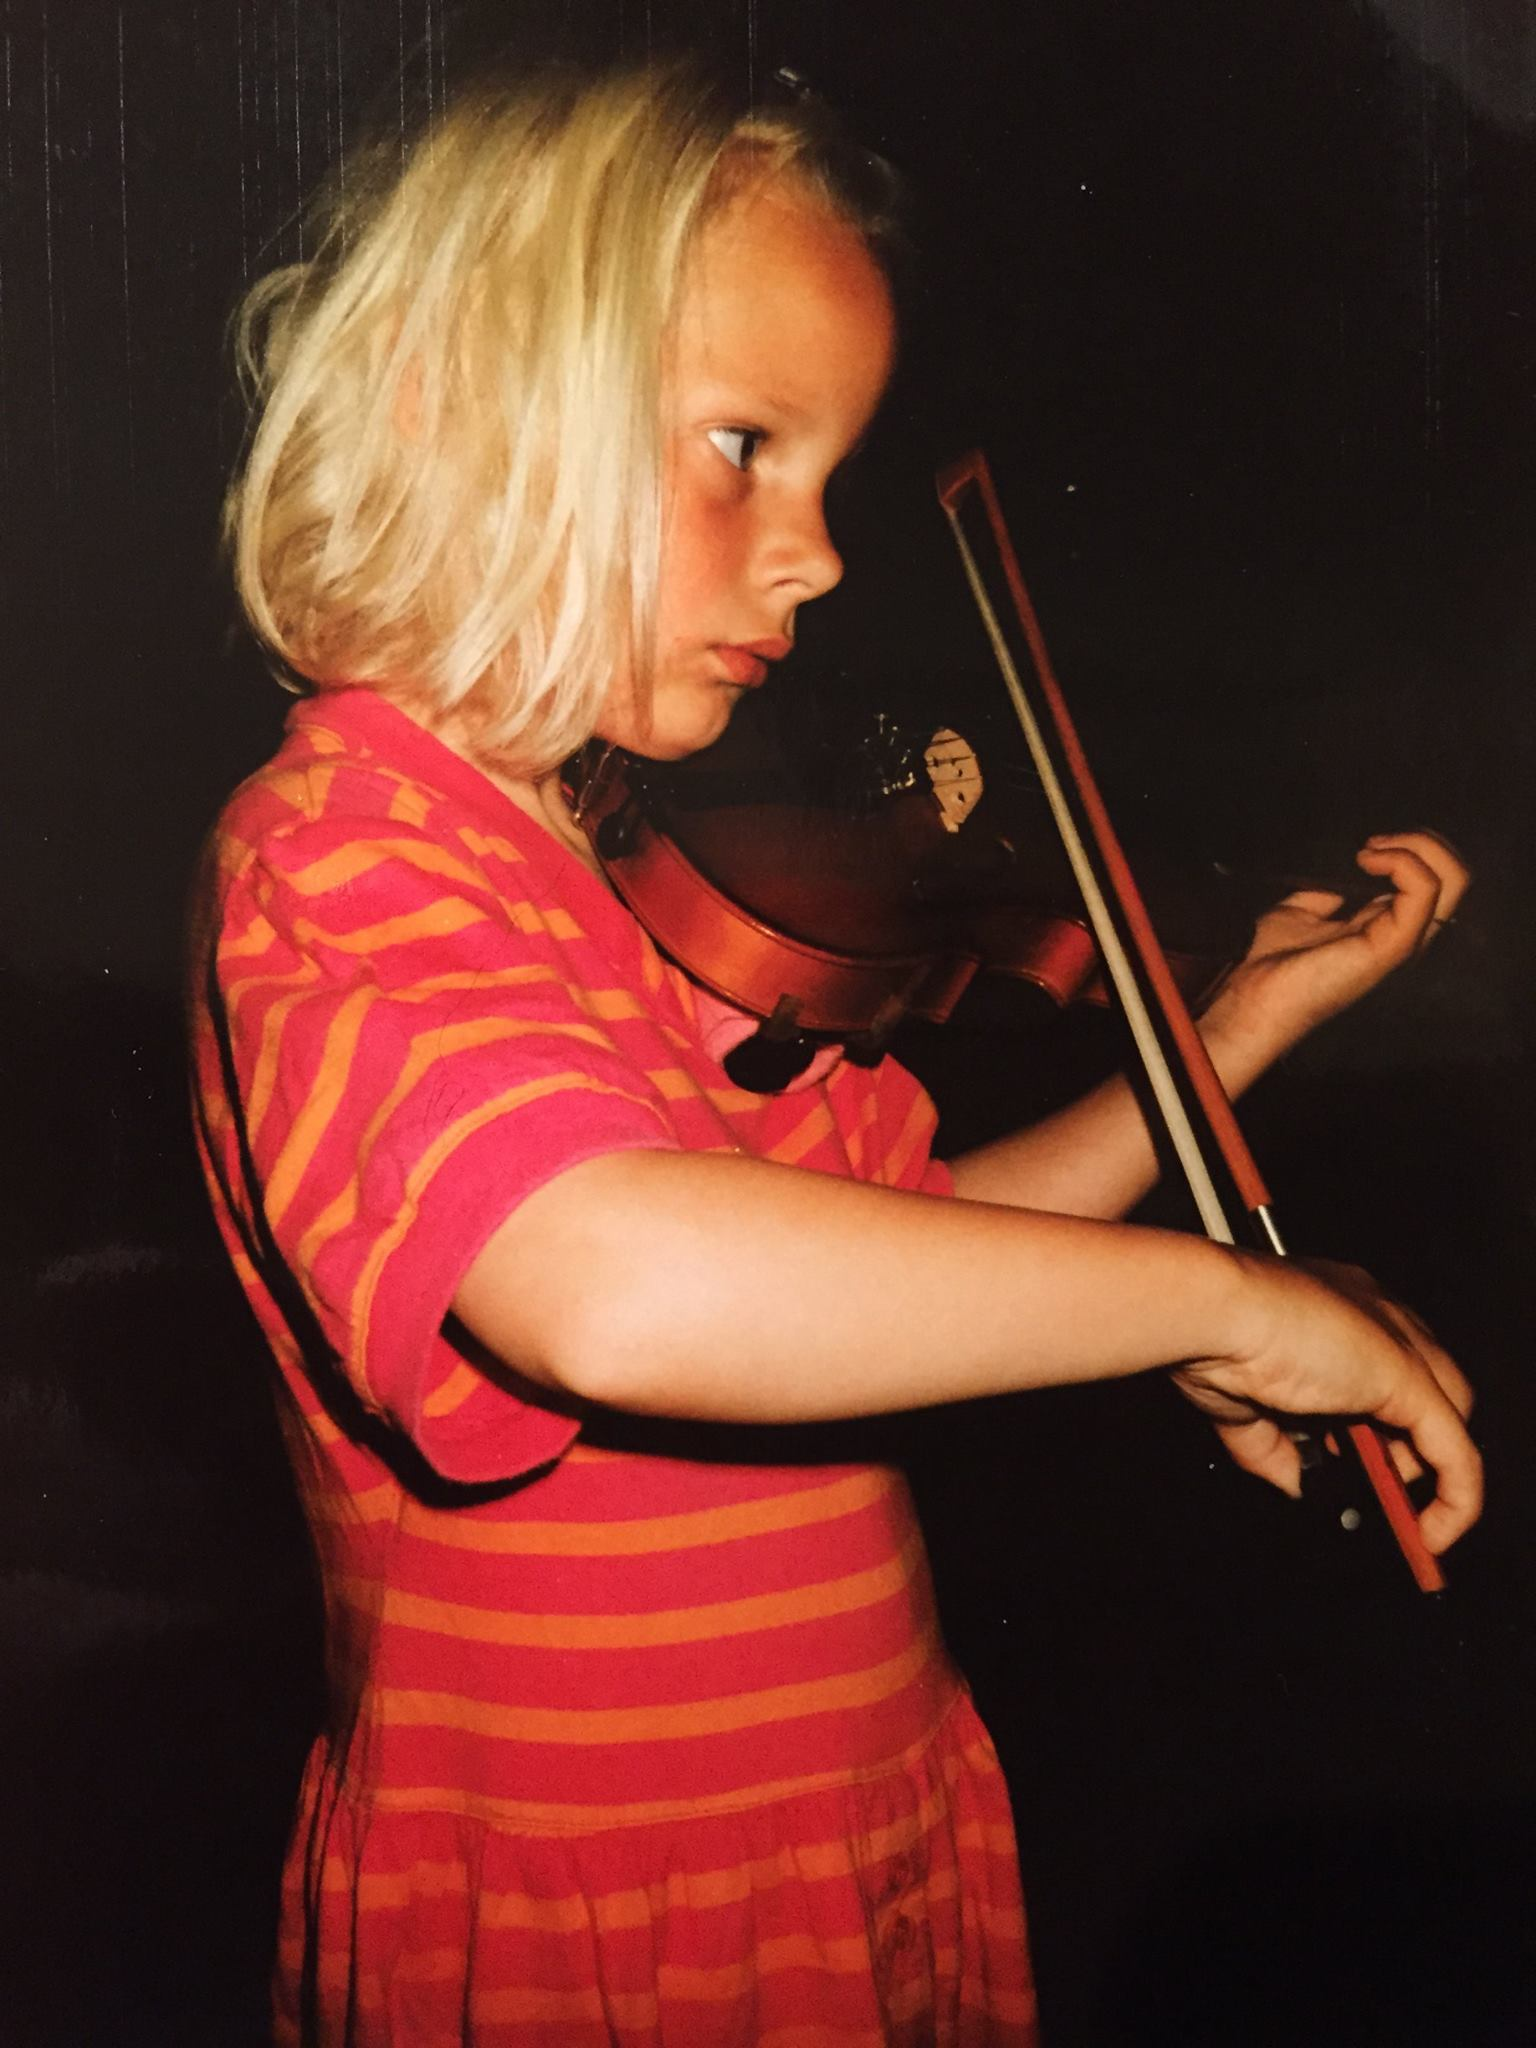 Simone Lamsma - 5 years old